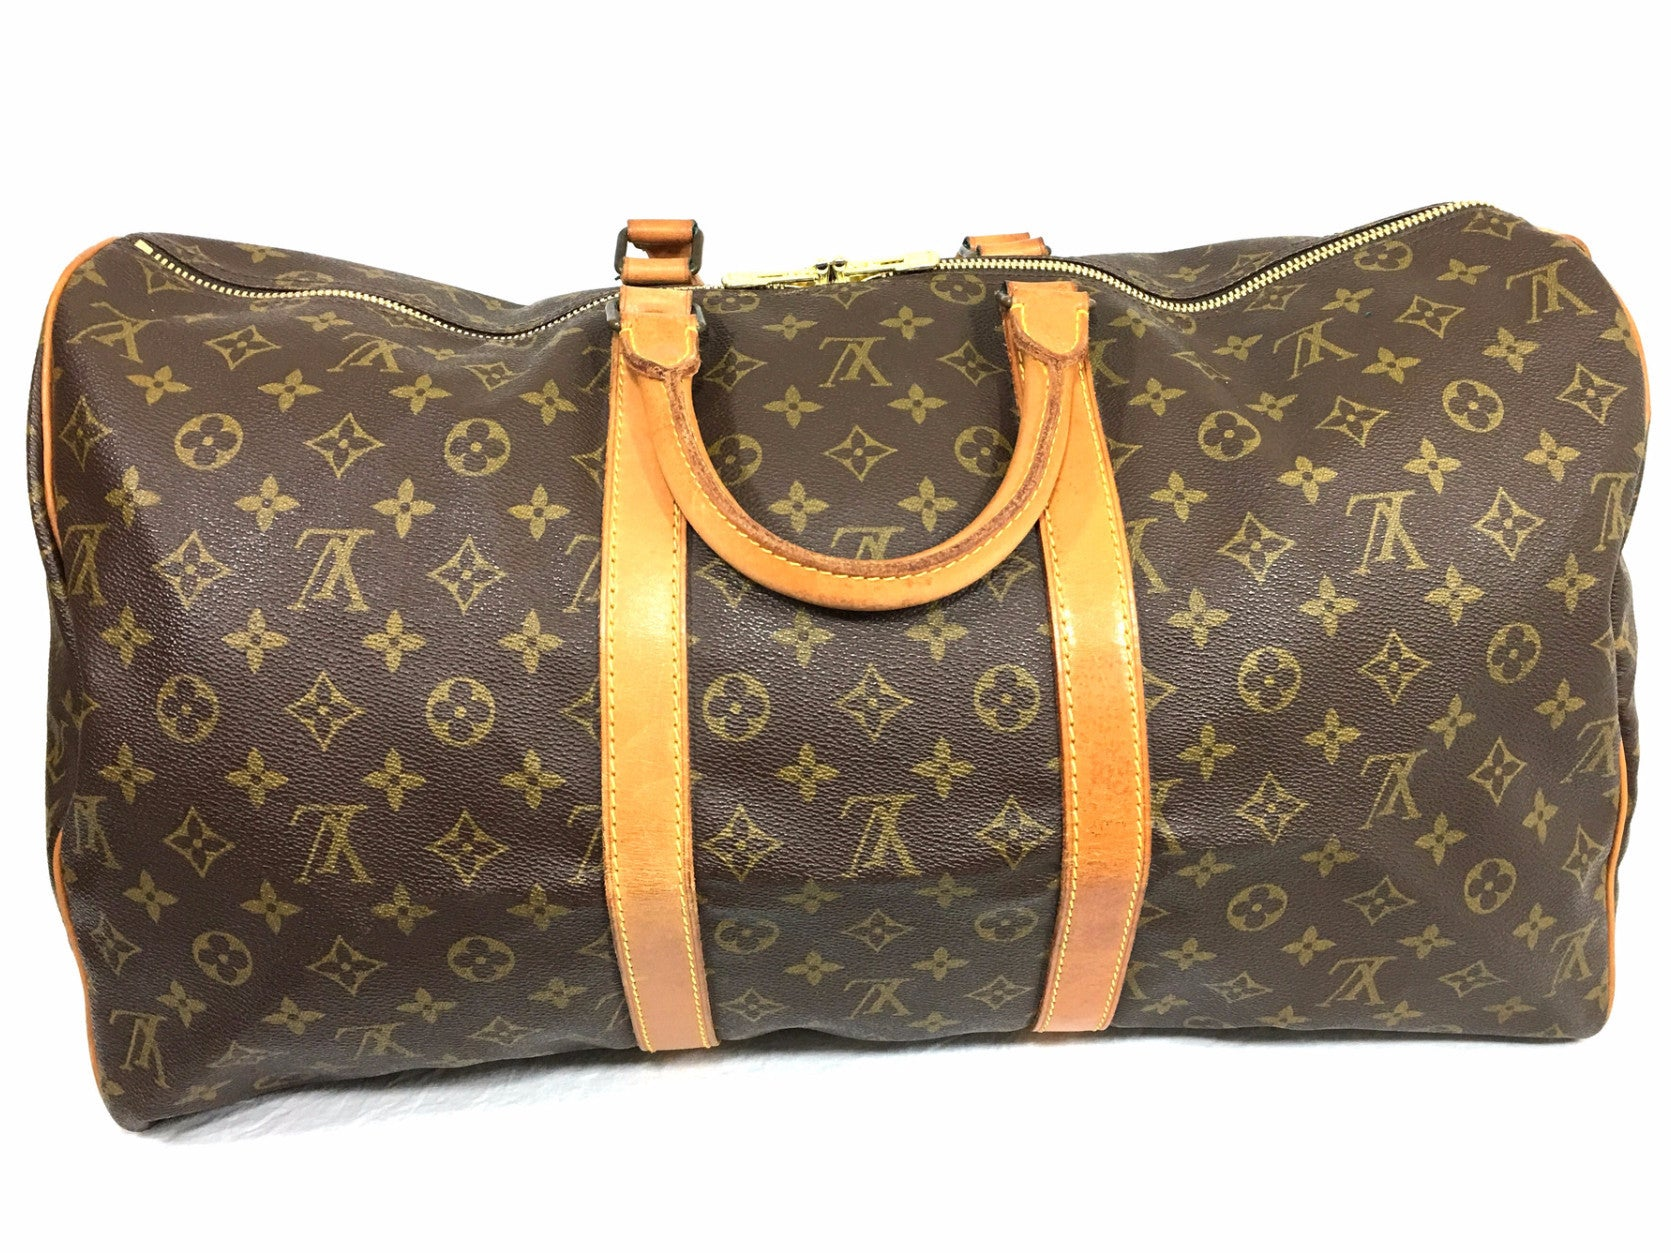 LOUIS VUITTON Keepall 50 Duffel Bag